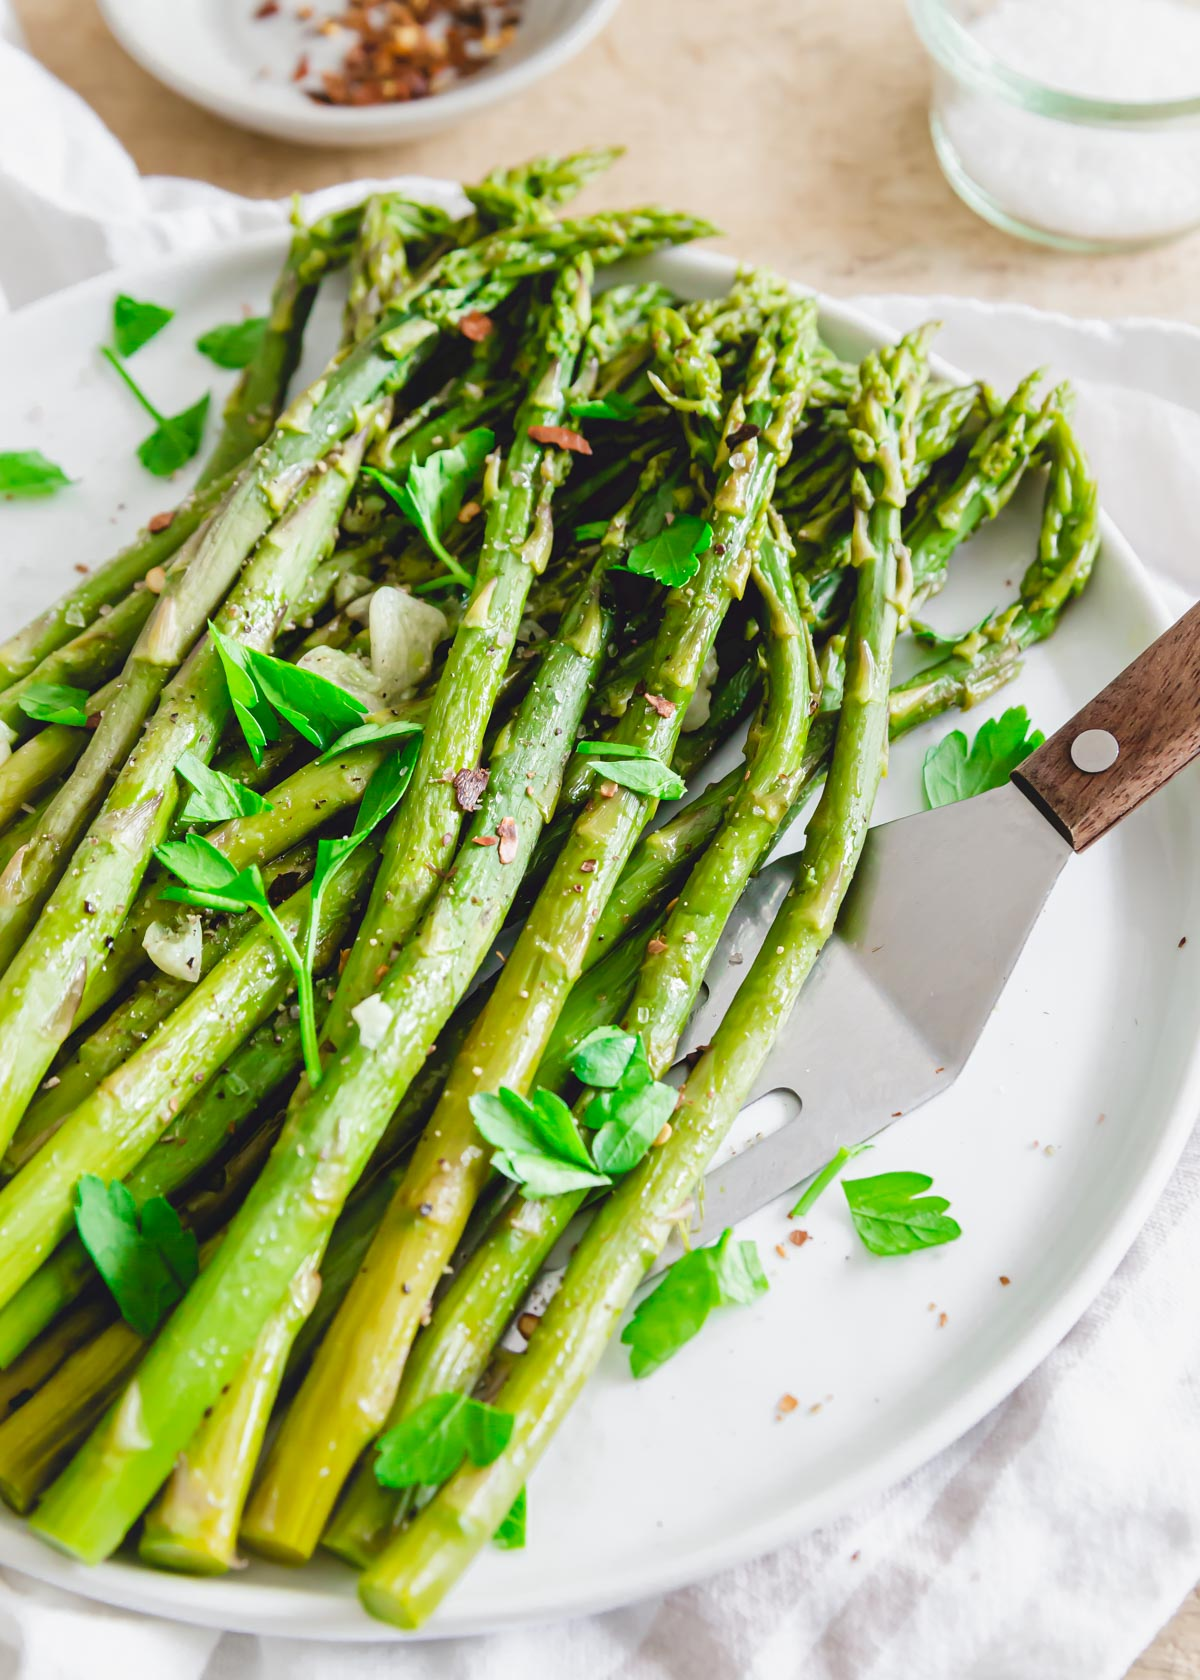 Asparagus cooked in the Instant Pot in just minutes on a plate with a serving spatula.